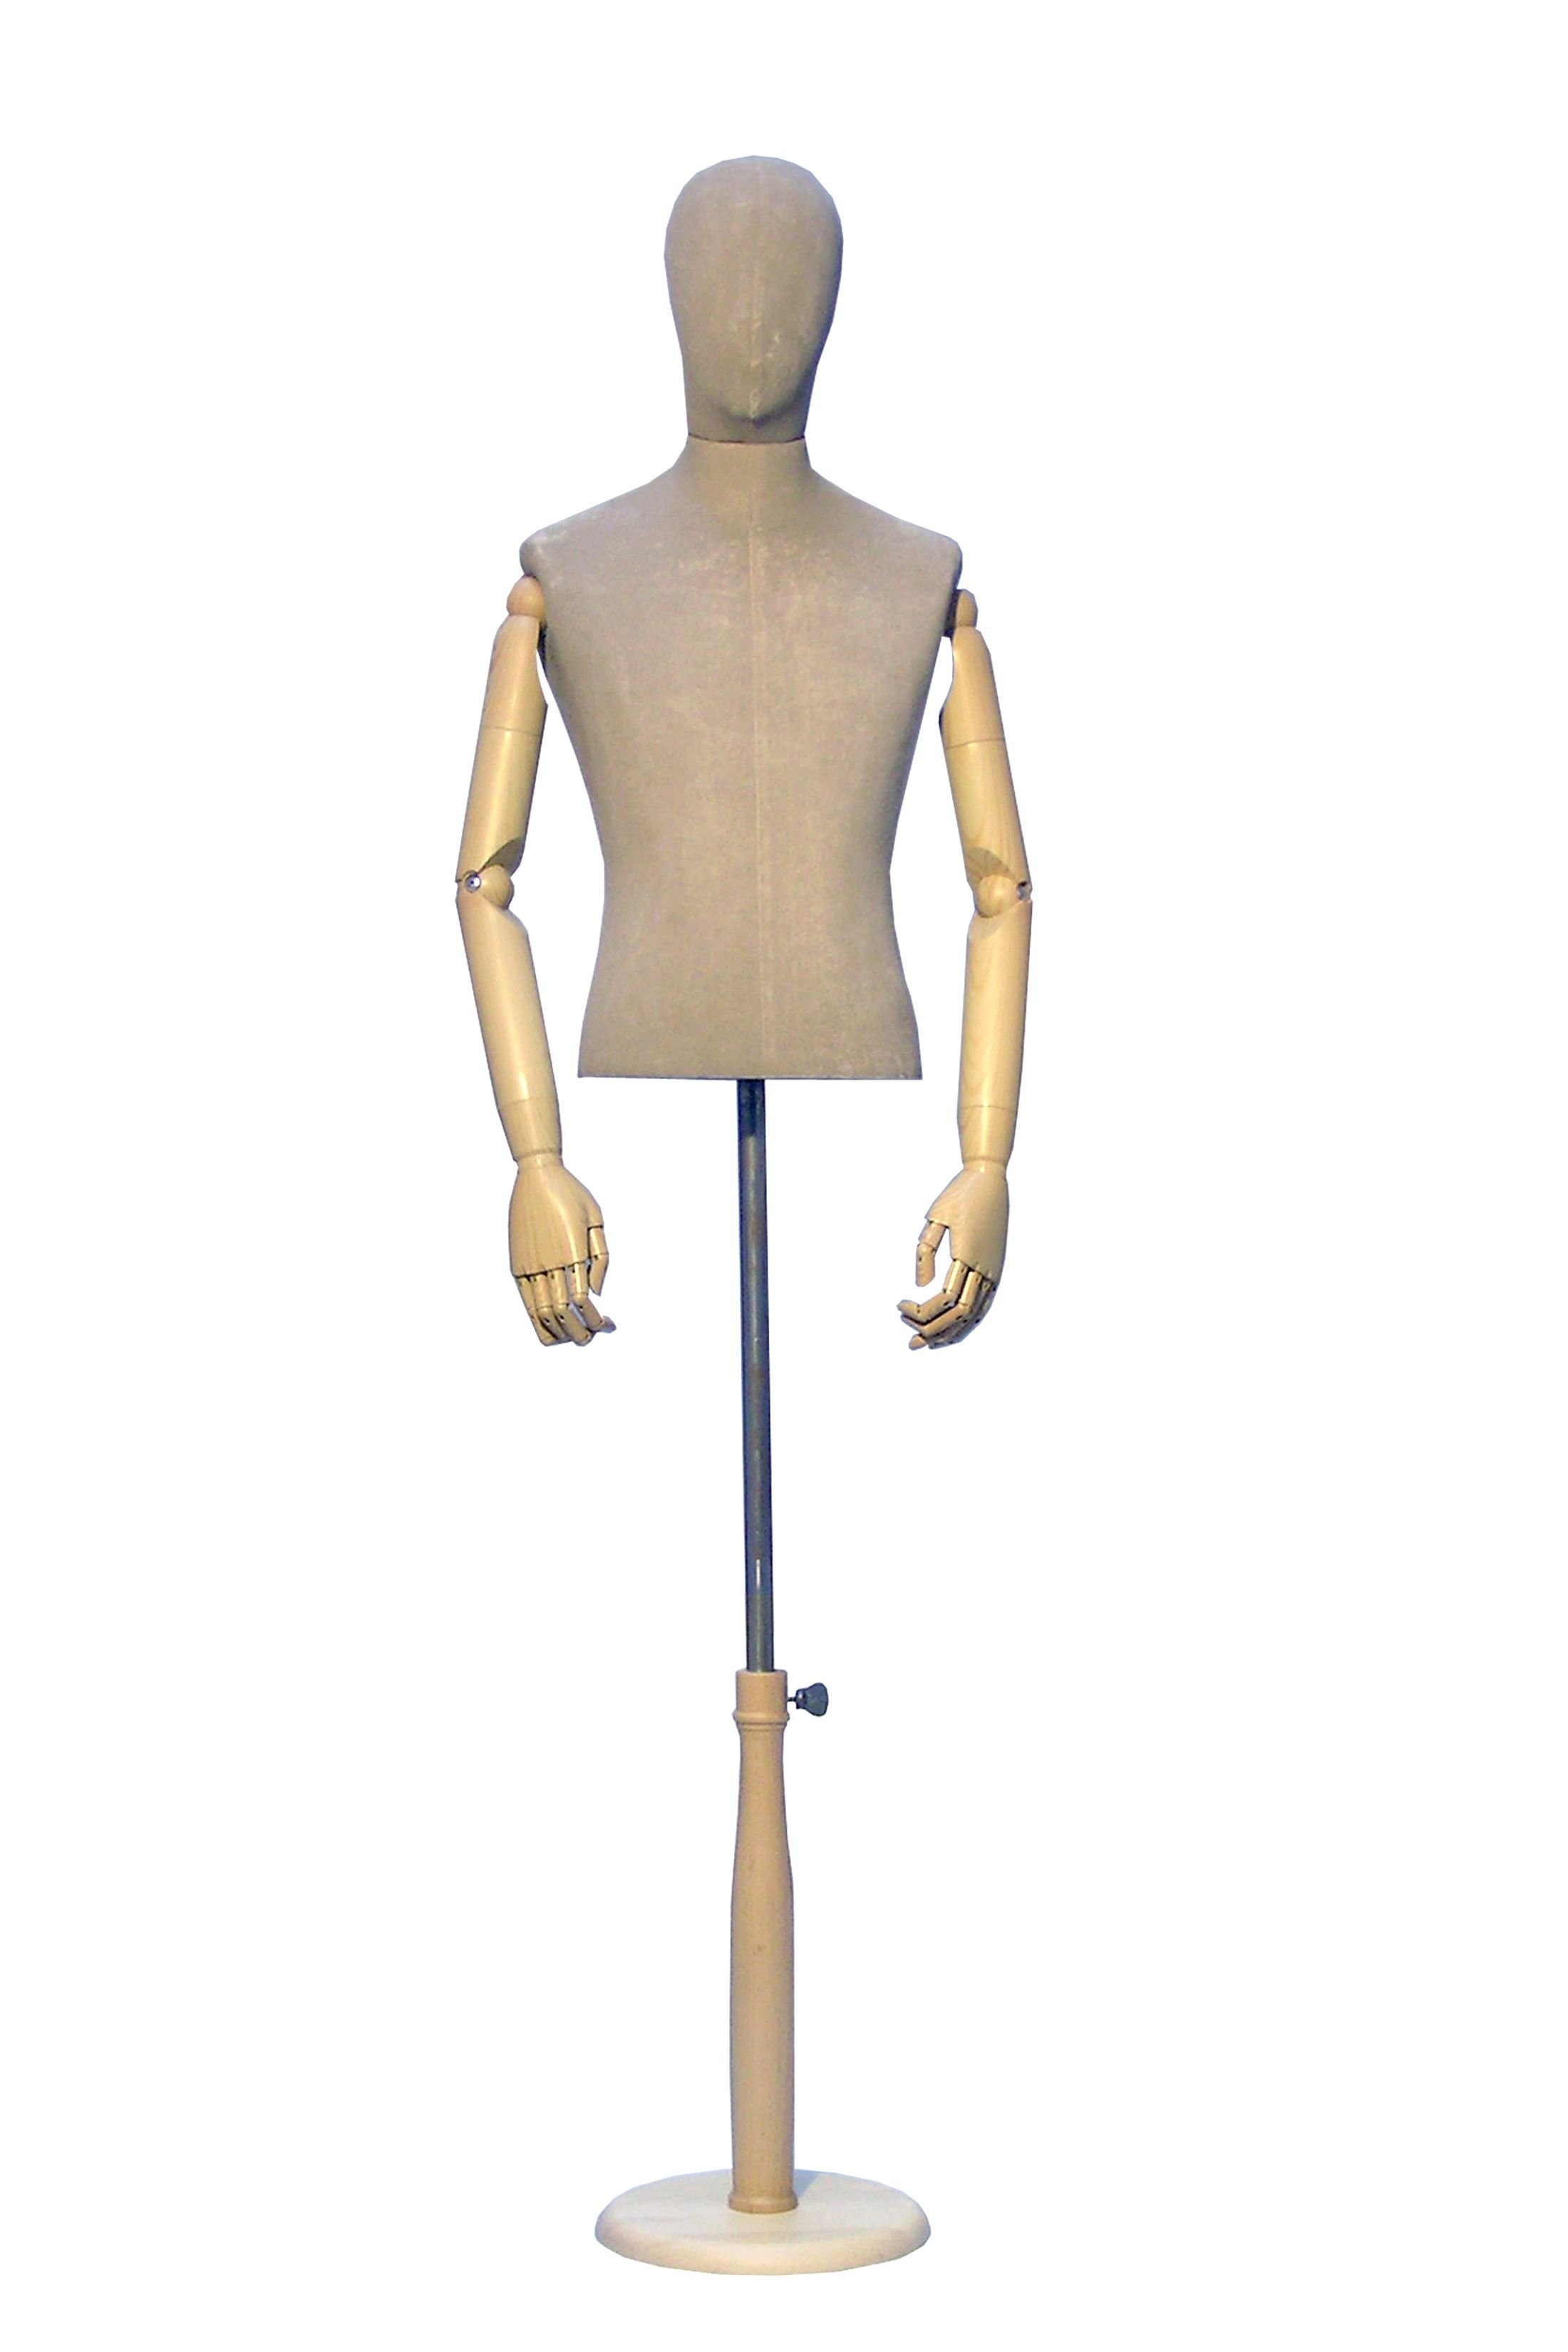 Male bust form with head + arms | Mannequins | Bust form | Vintage mannequin - http://www.heartbeatuk.com/male-bust-form-with-head-and-arms/product/607